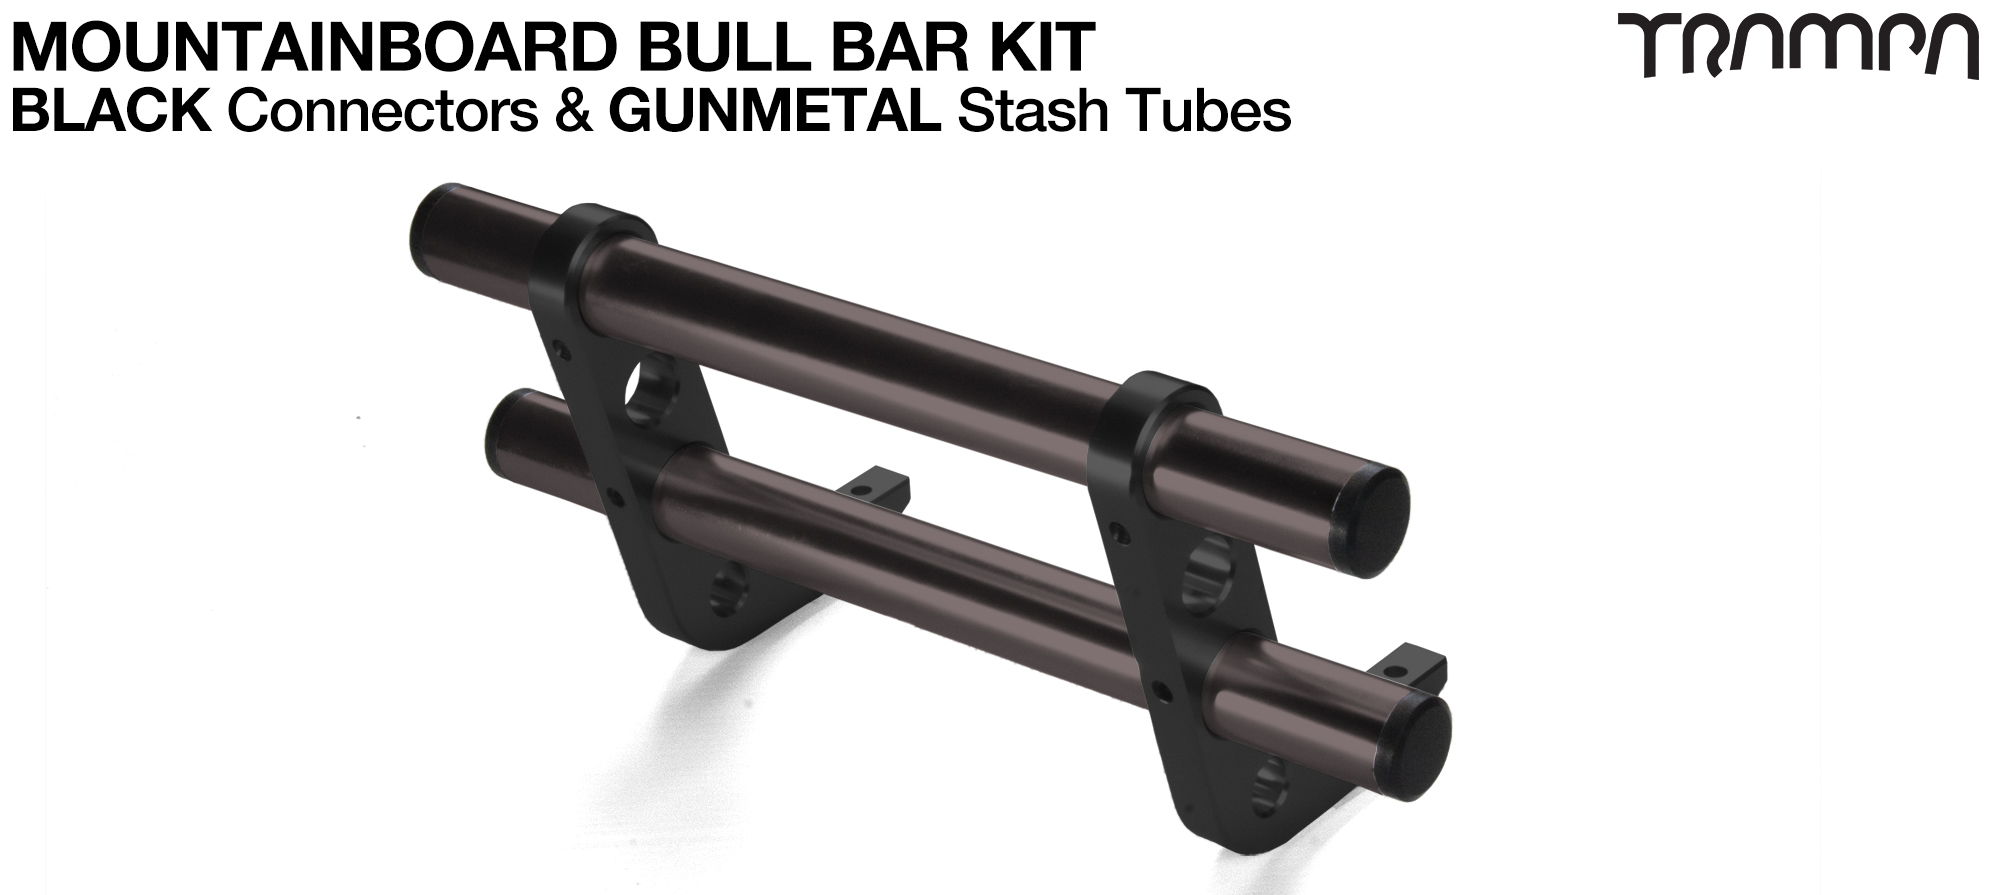 BLACK Uprights & GUNMETAL Crossbar BULL BARS for MOUNTAINBOARDS using T6 Heat Treated CNC'd AluminIum Clamps, Hollow Aluminium Stash Tubes with Rubber end bungs